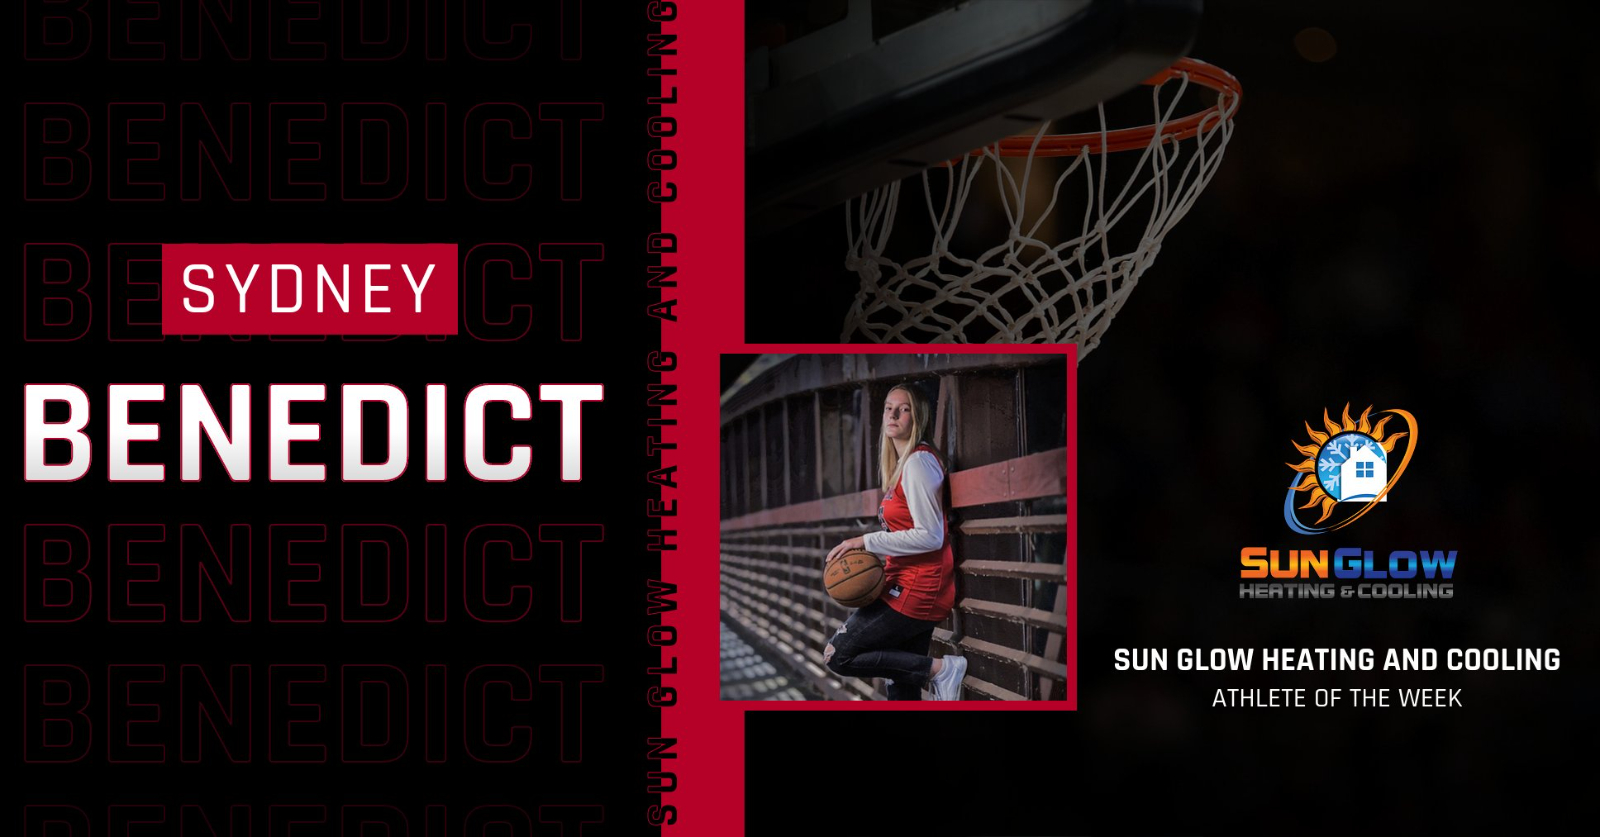 Sun Glow Heating and Cooling Athlete of the Week for October 11th-17th